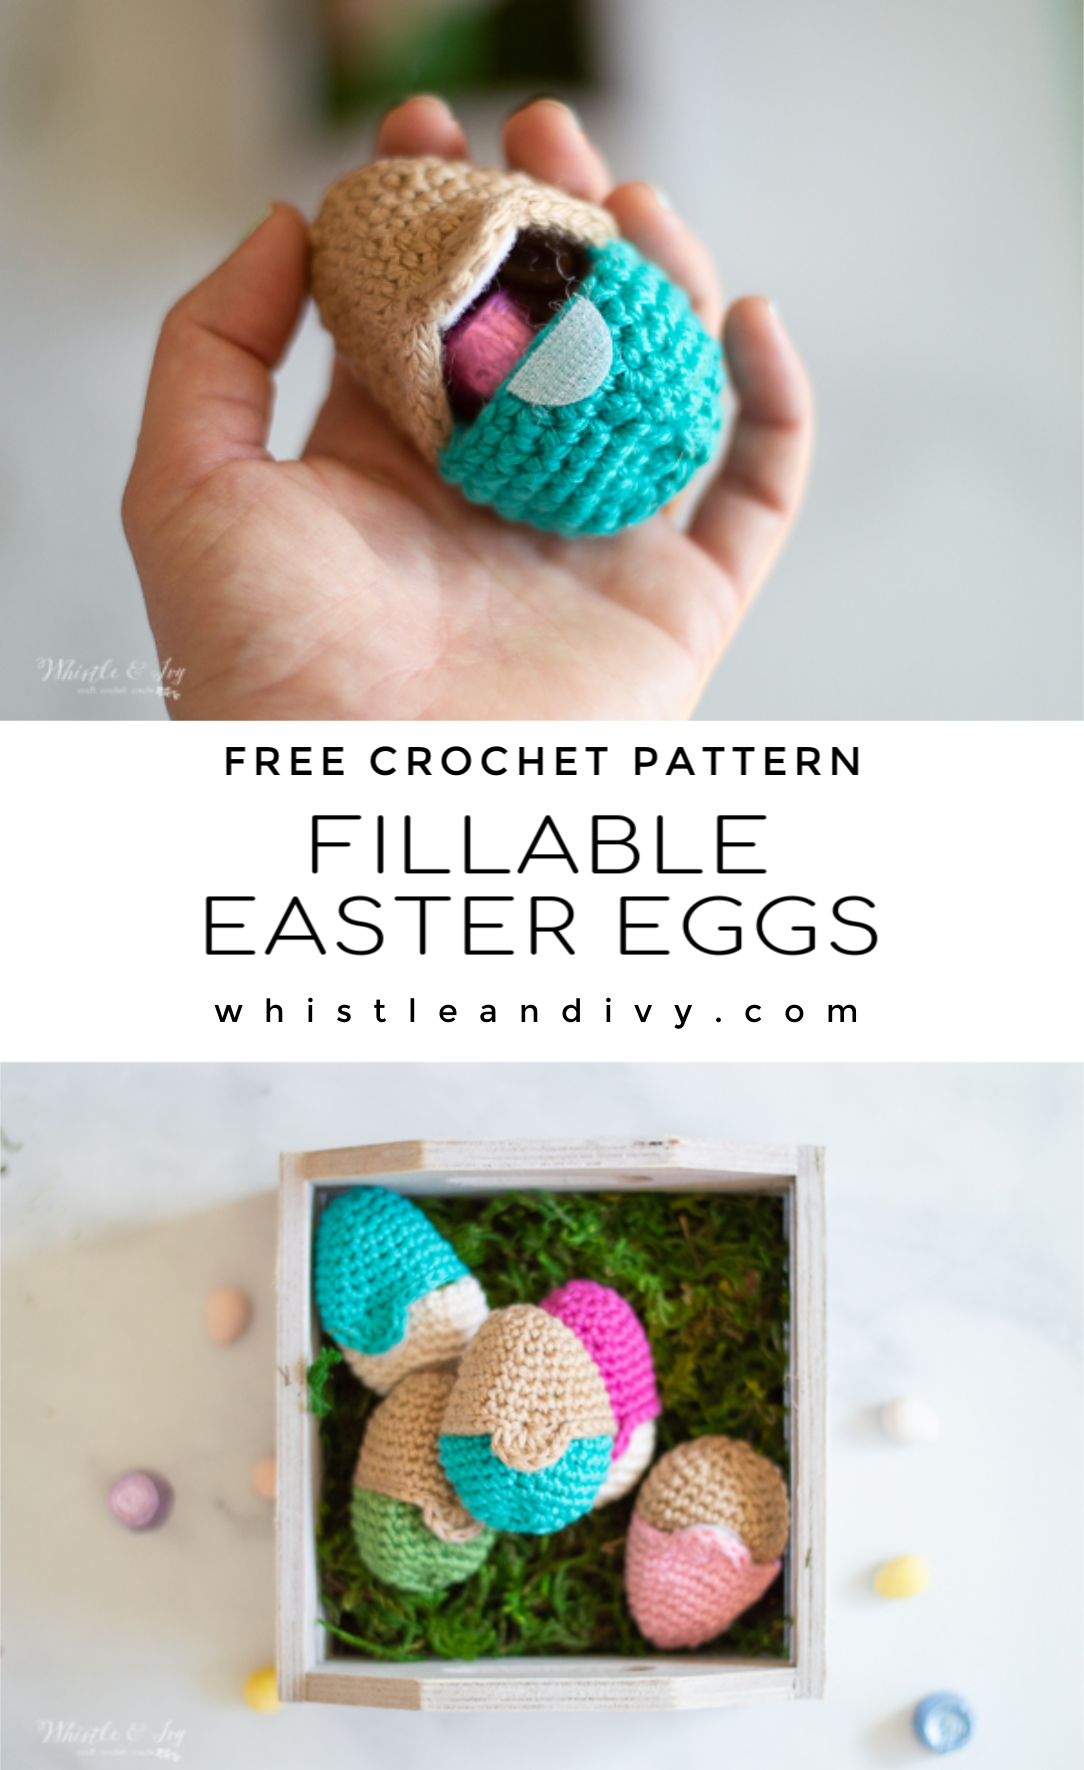 crochet Easter eggs fillable eggs for egg hunts and easter baskets